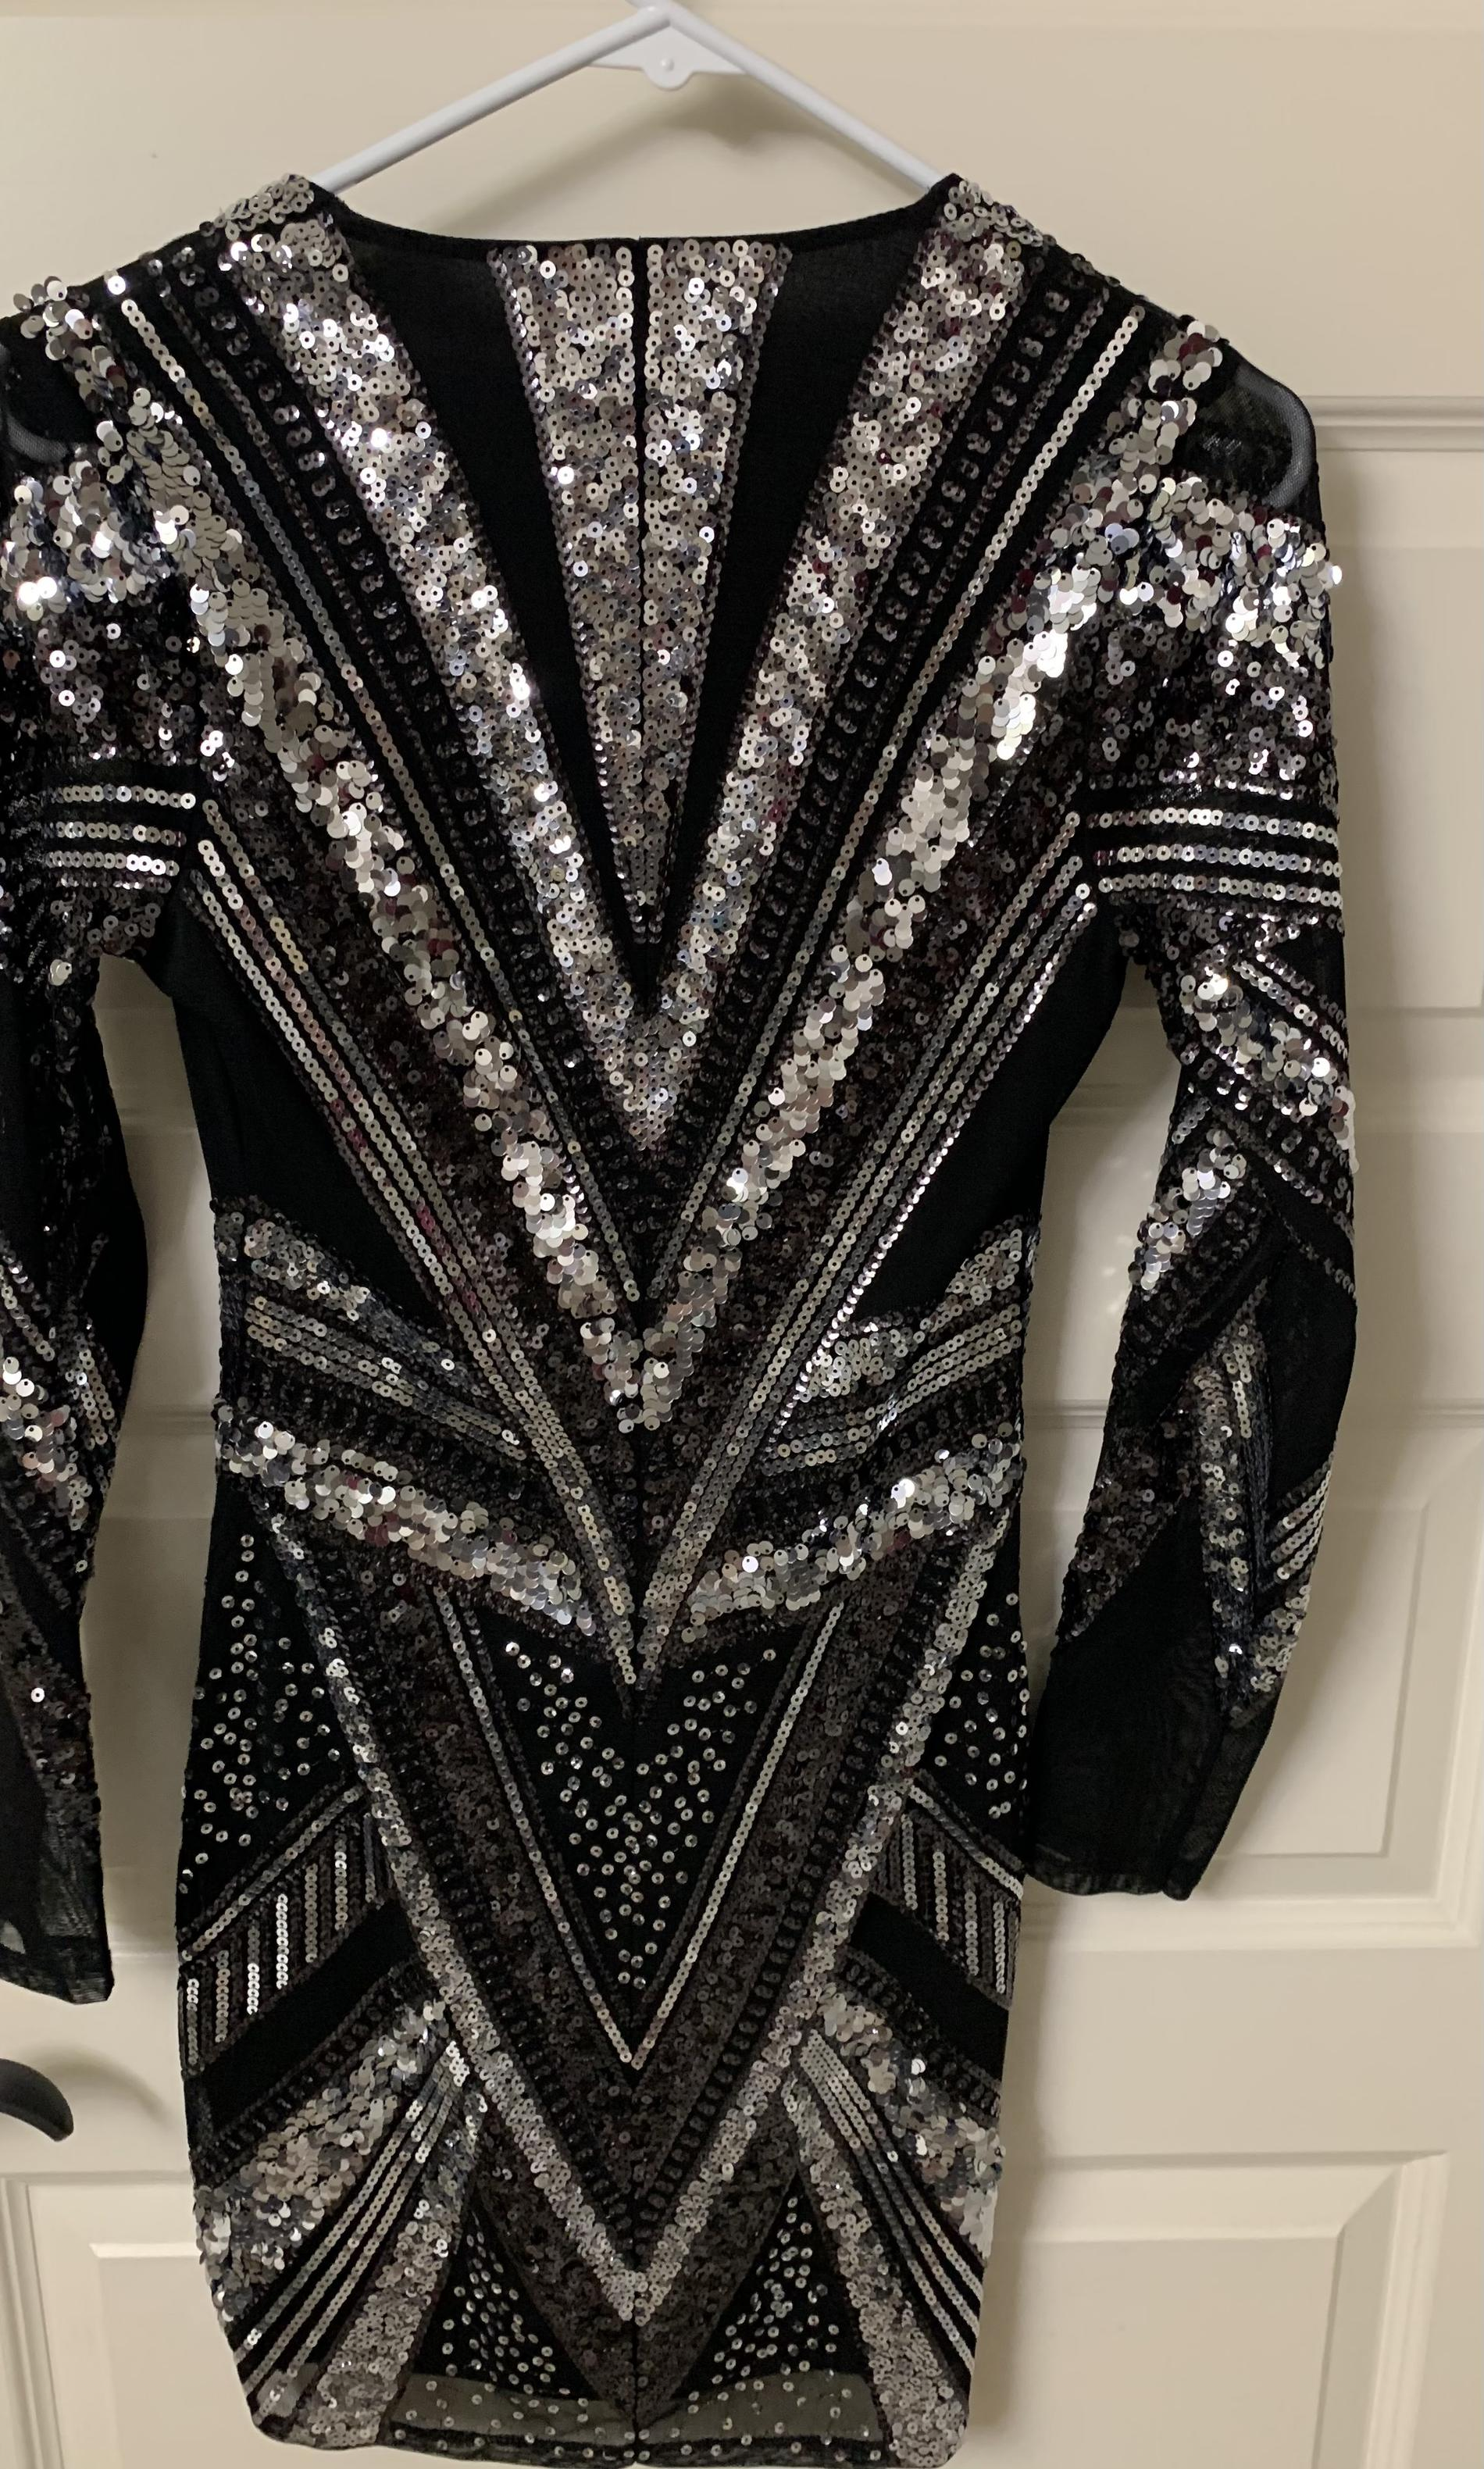 Express Black Size 4 Jewelled Party Cocktail Dress on Queenly